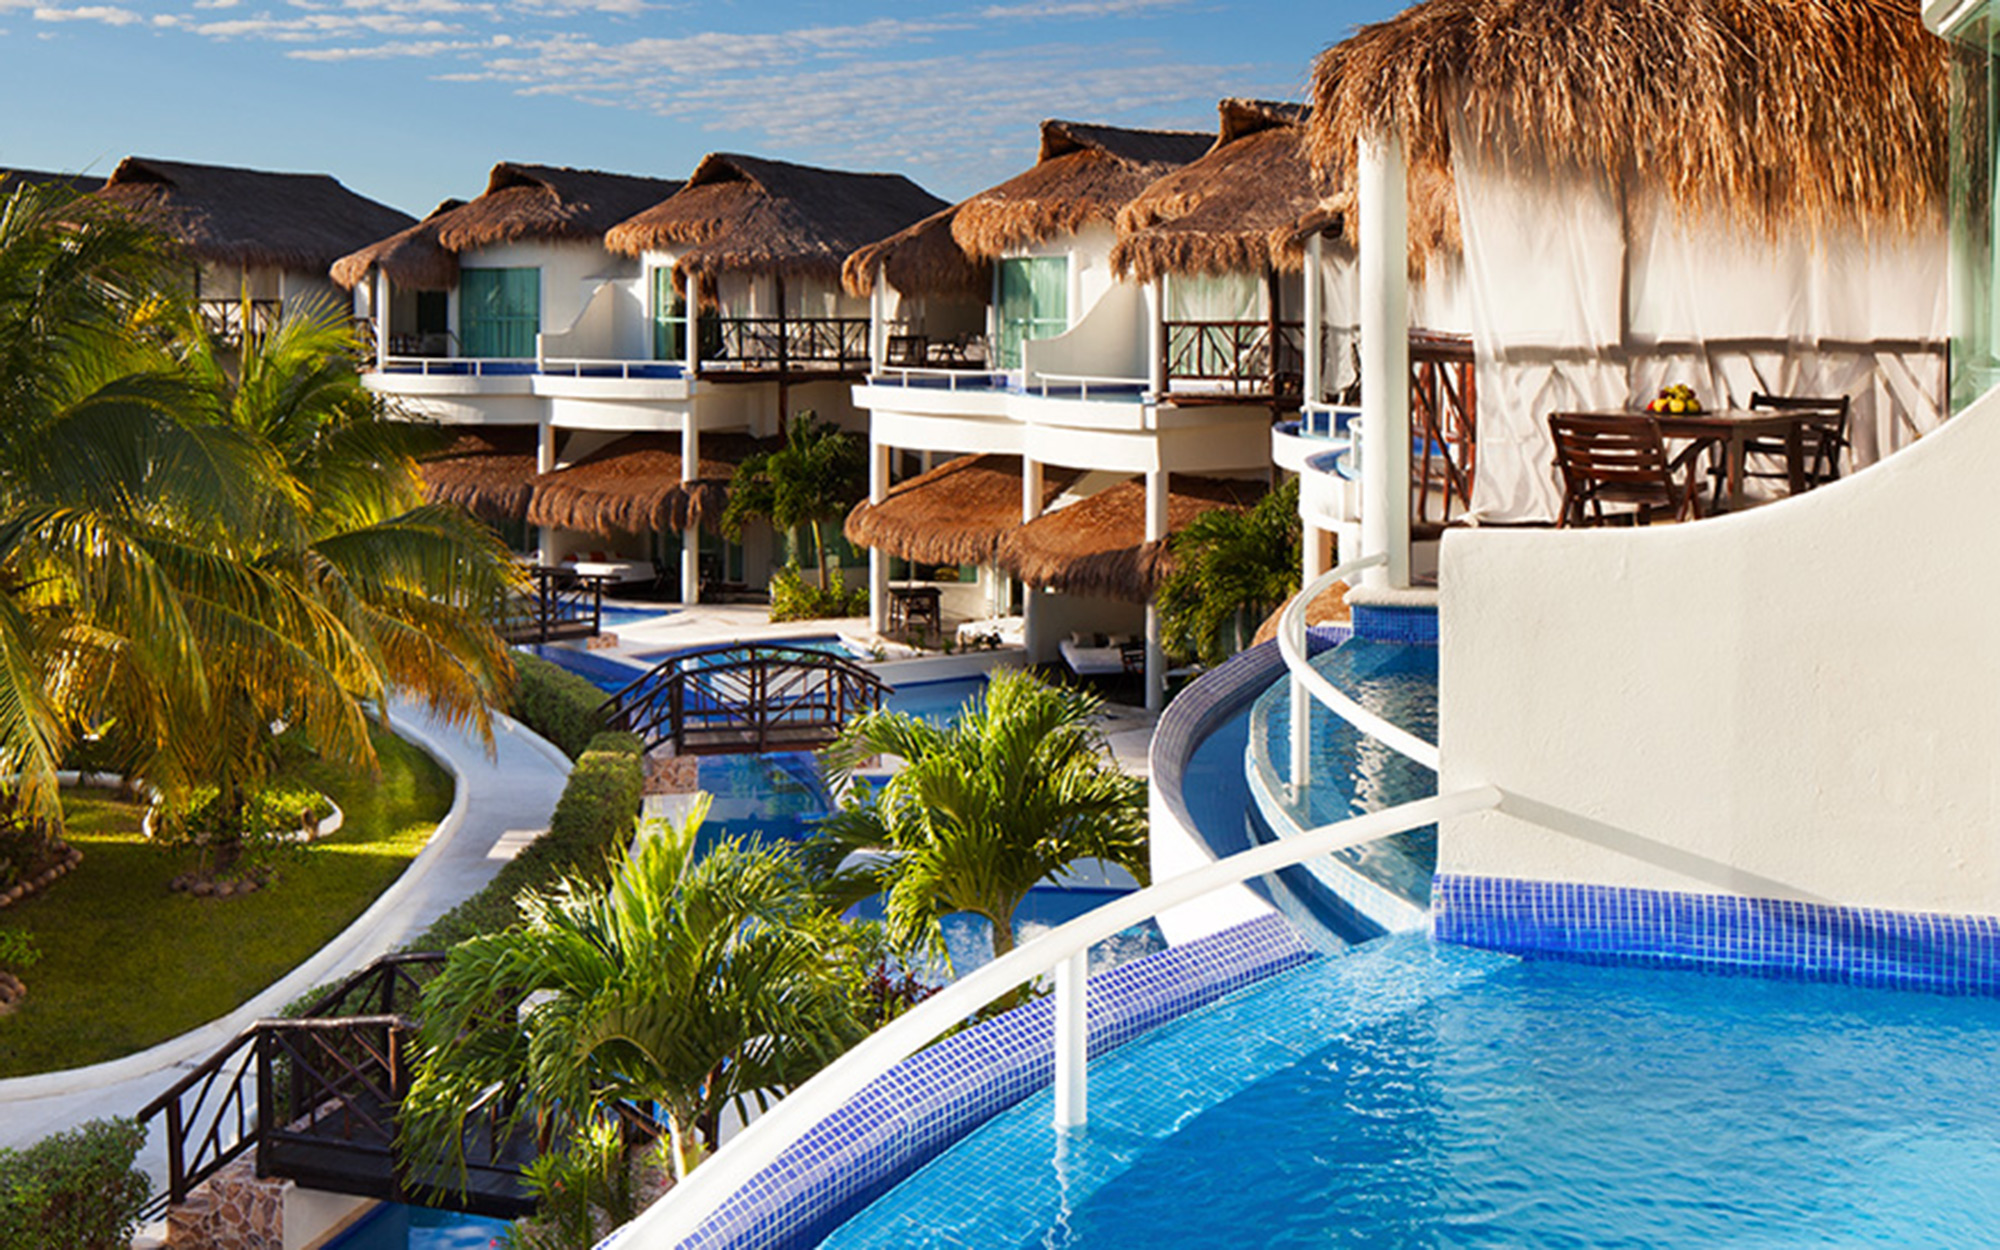 Caribbean Group Getaways: El Dorado Casitas Royale in Riviera Maya, Mexico